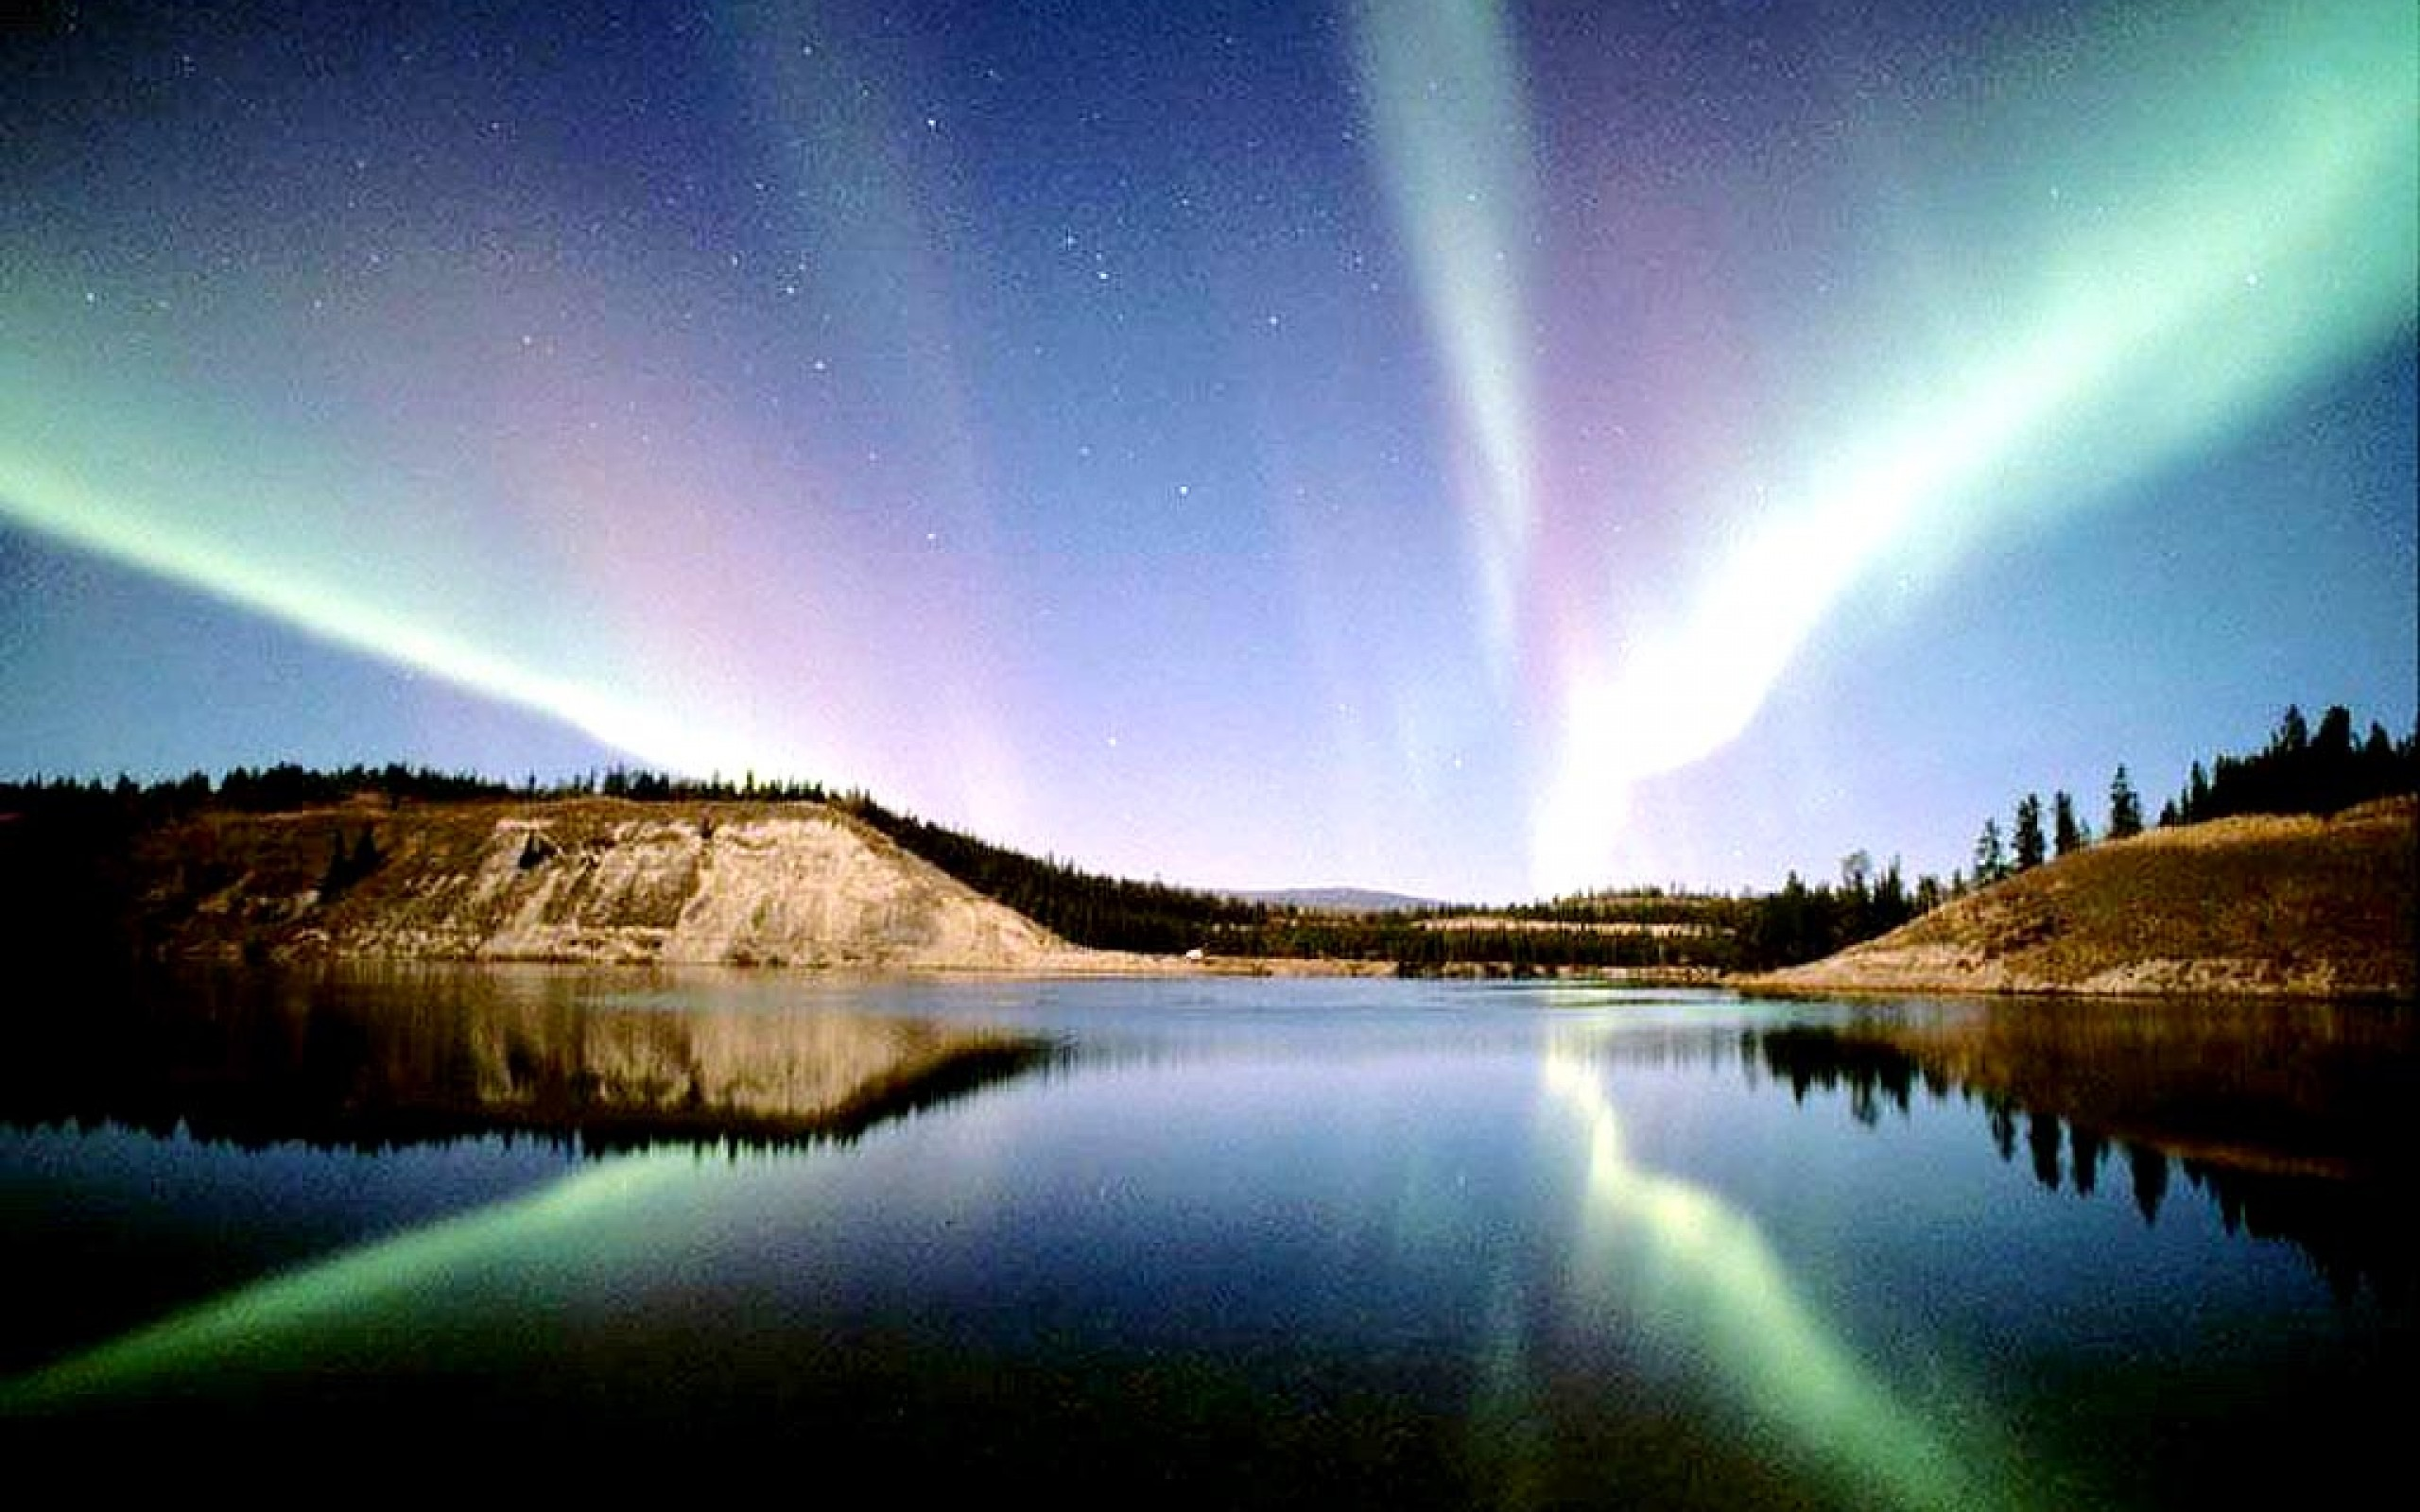 Blue Northern Lights Wallpaper Hd Dlwallhd Xpx 2560x1600px